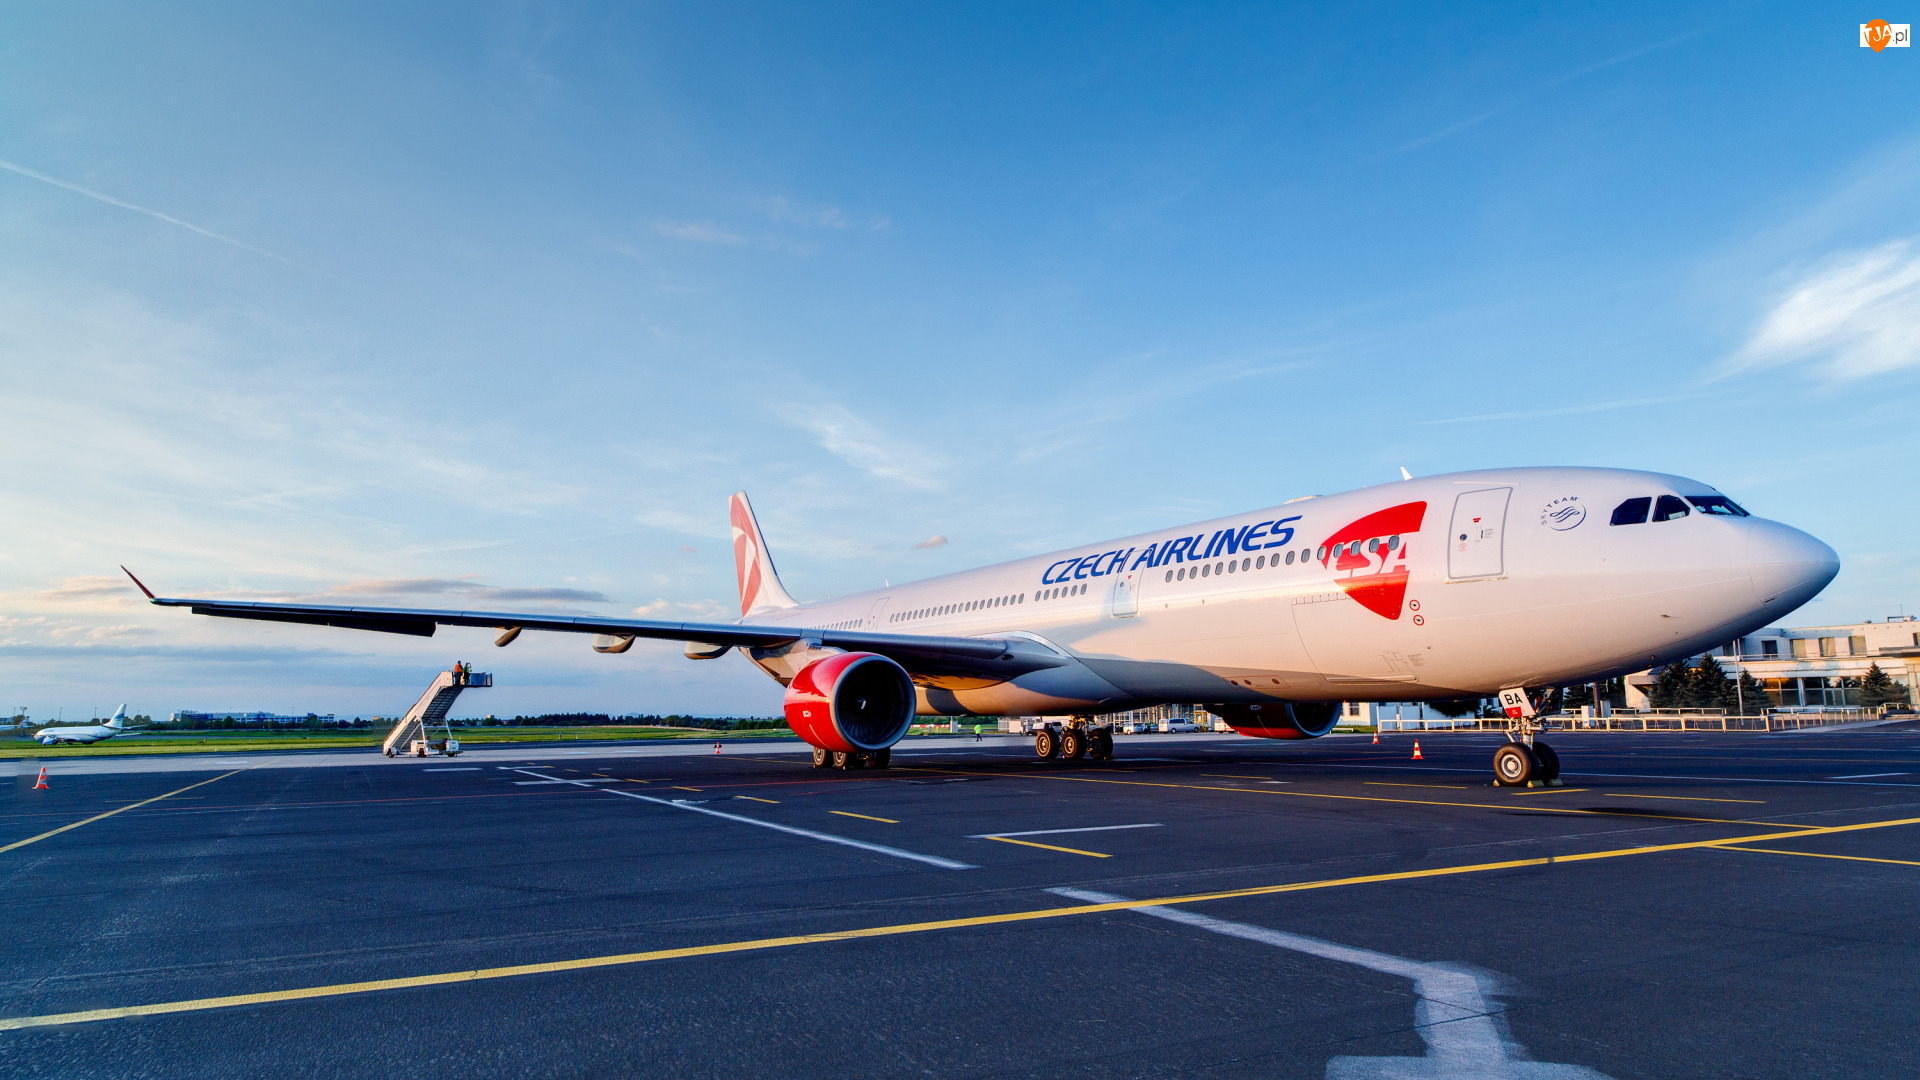 Czech Airlines, Samolot, Airbus A330, Linie lotnicze